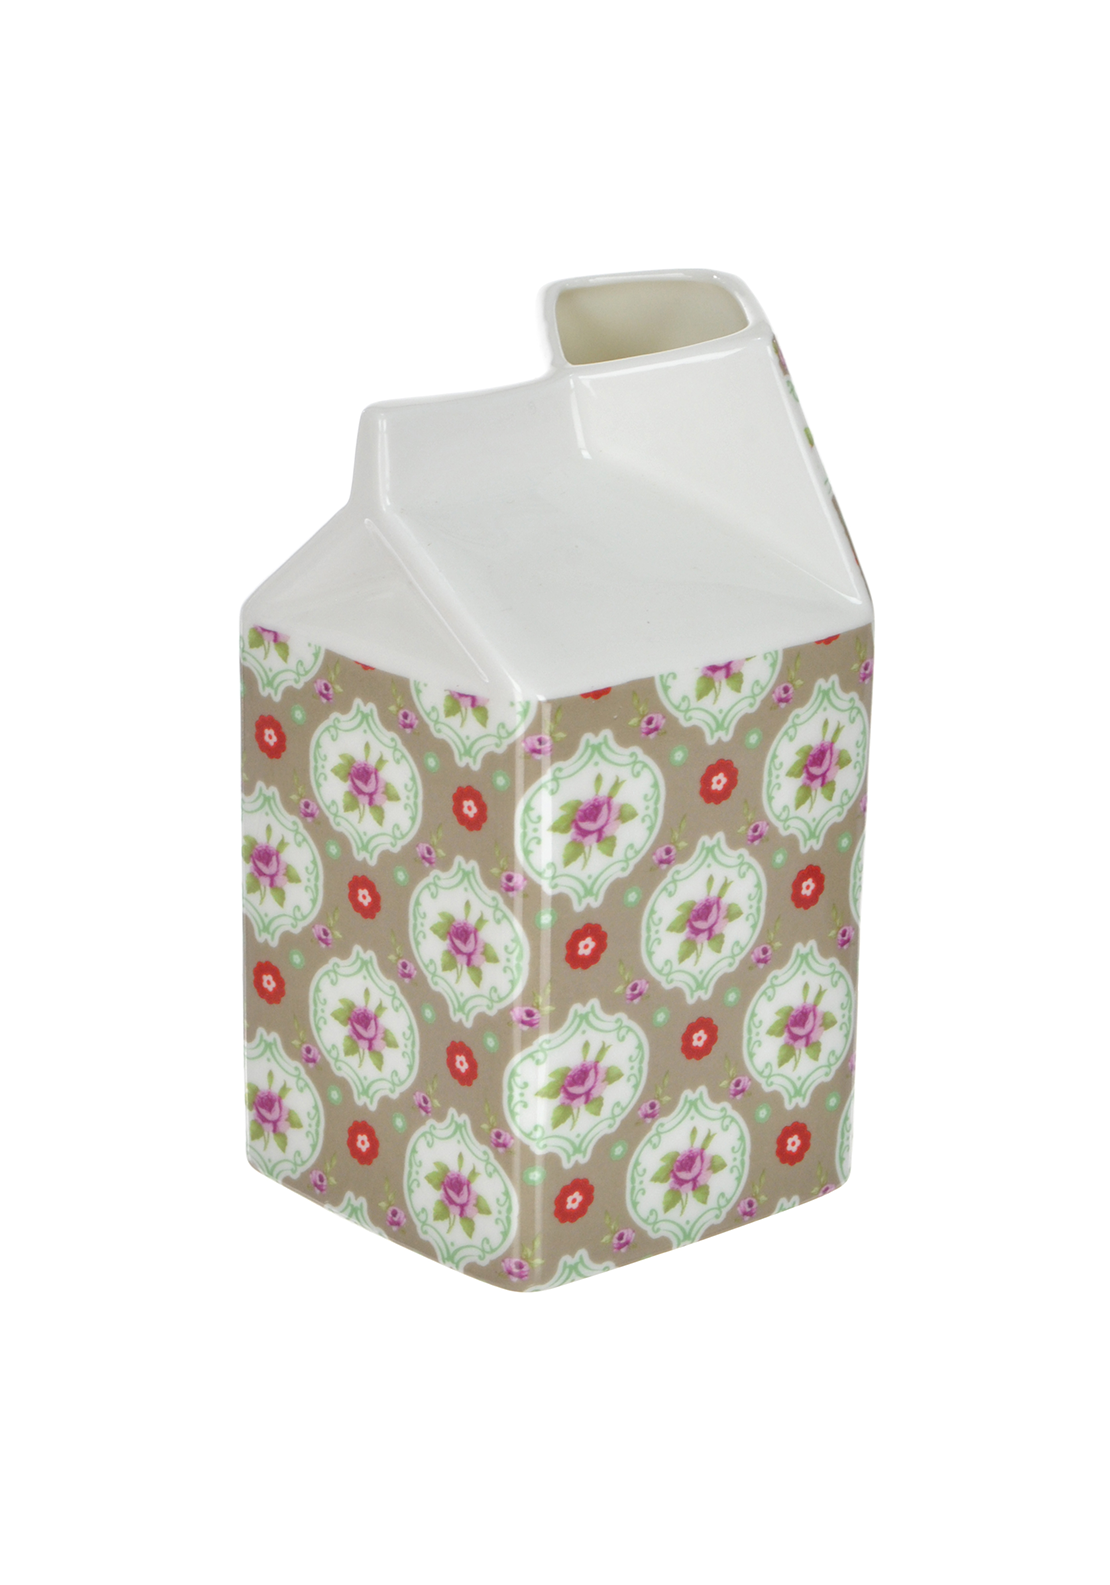 Shannon Bridge Buds Large Carton, White/Multi Floral Design